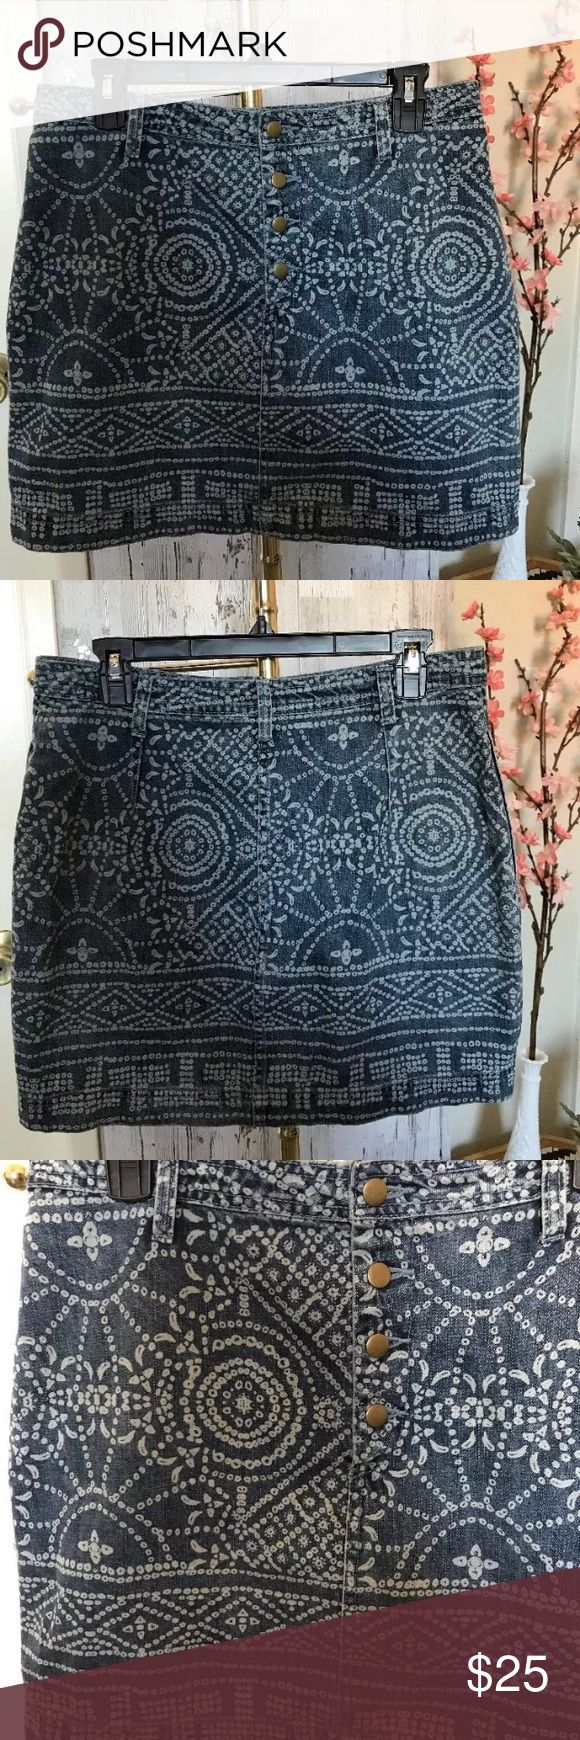 Free People Boho Tribal Print Skirt SZ 12 Free People Denim Skirt Button down with side pockets 16 in waist (laying flat) 16 in length (approx) Free People Skirts Mini